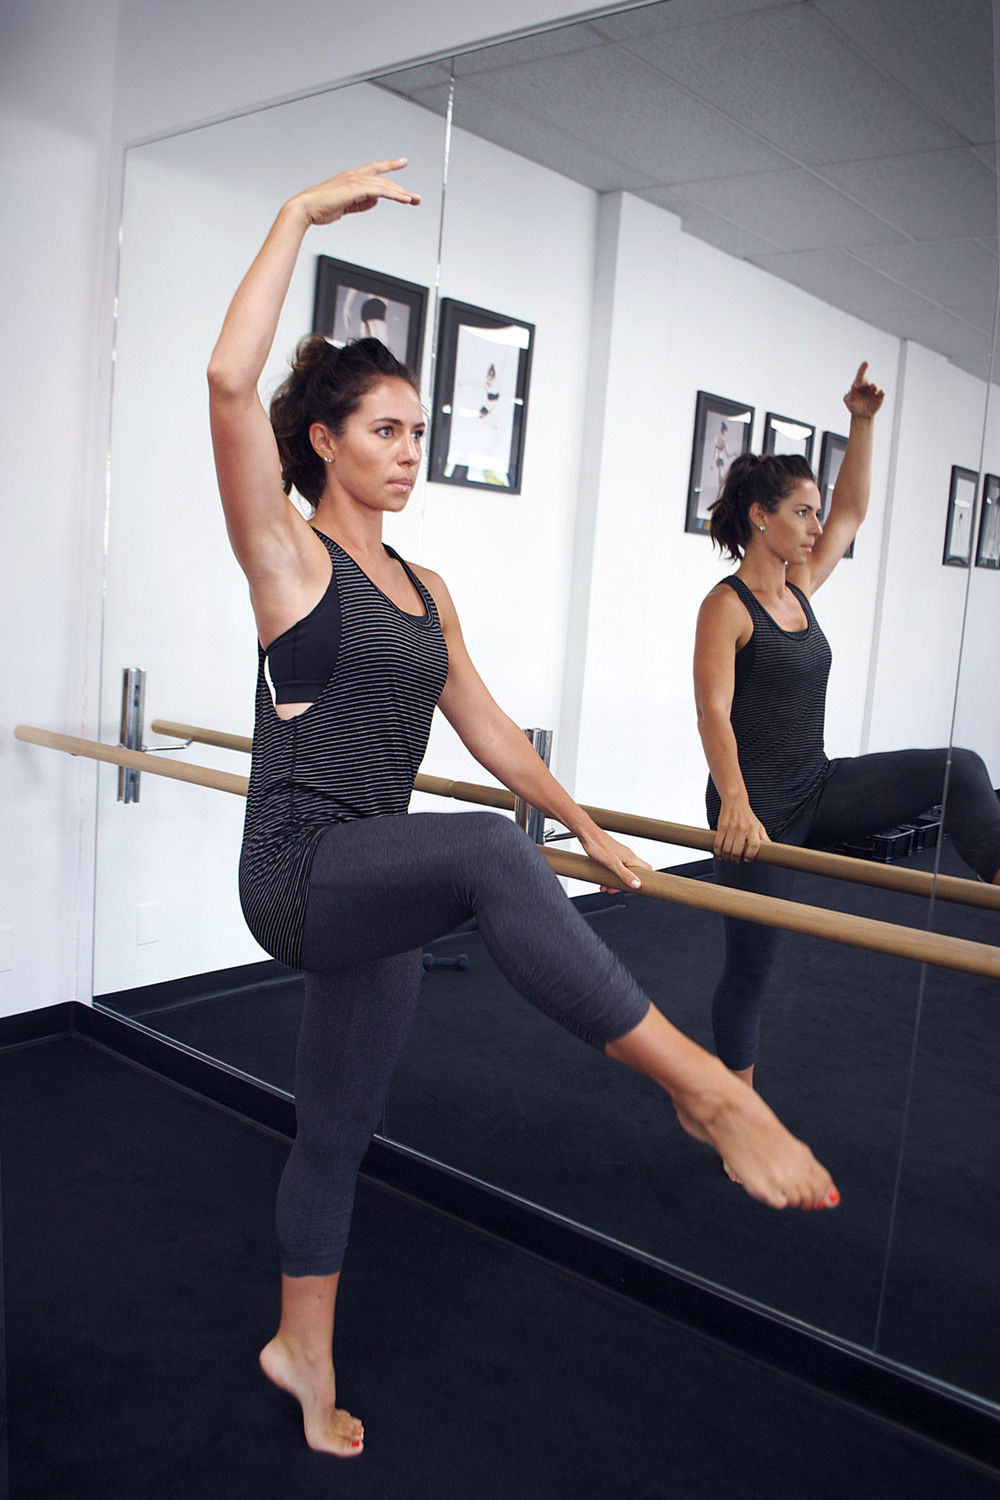 Barre Cardio Cardio Barre Workout